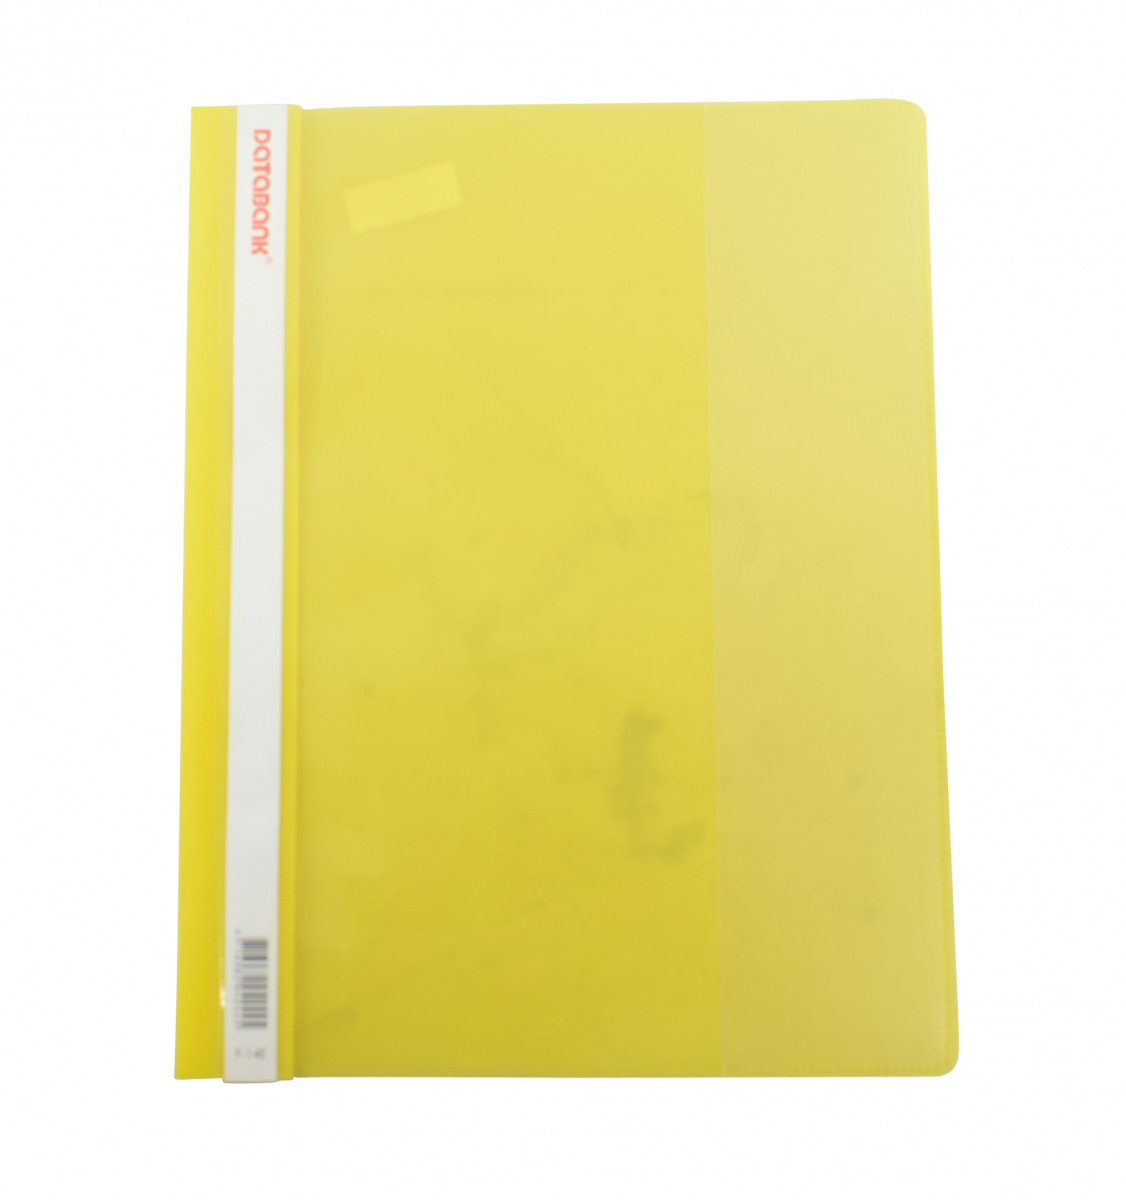 Carpeta plastica transparente color amarillo